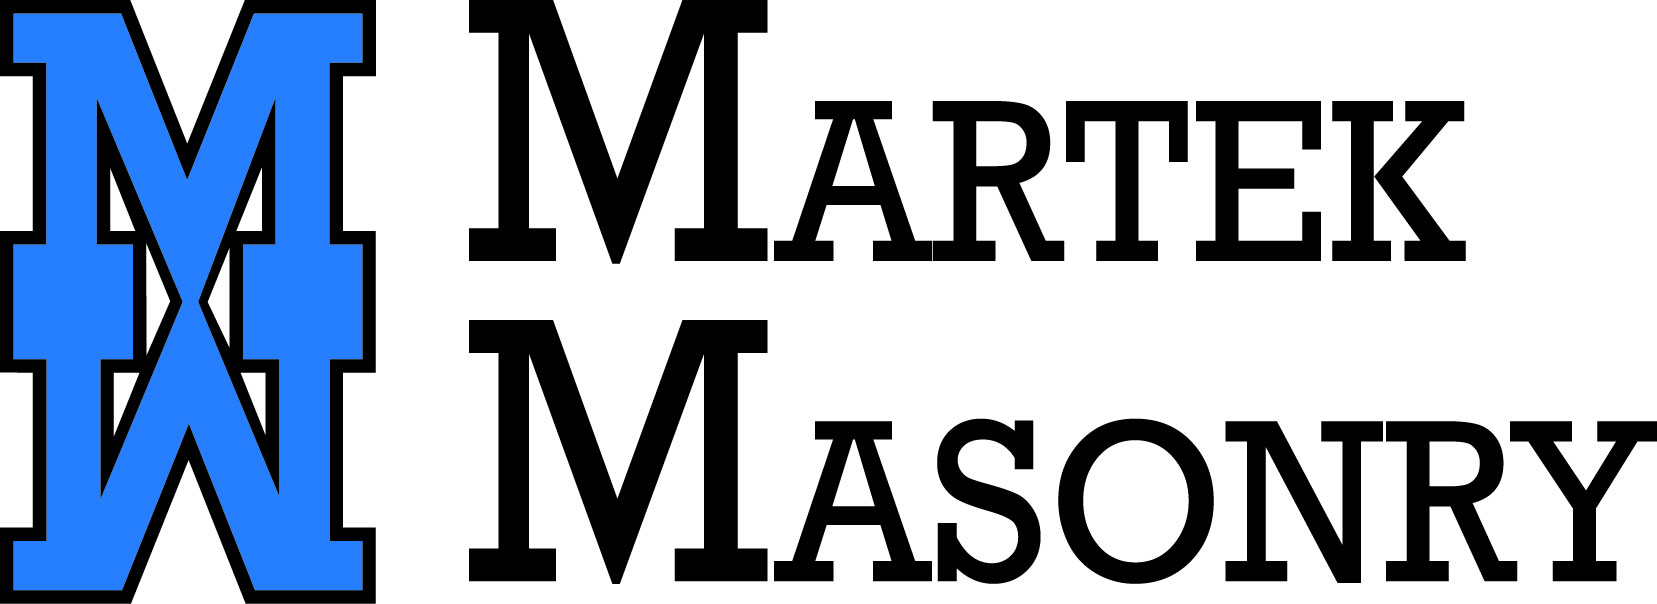 Martek Masonry – Masonry Contractors Vancouver and Lower Mainland